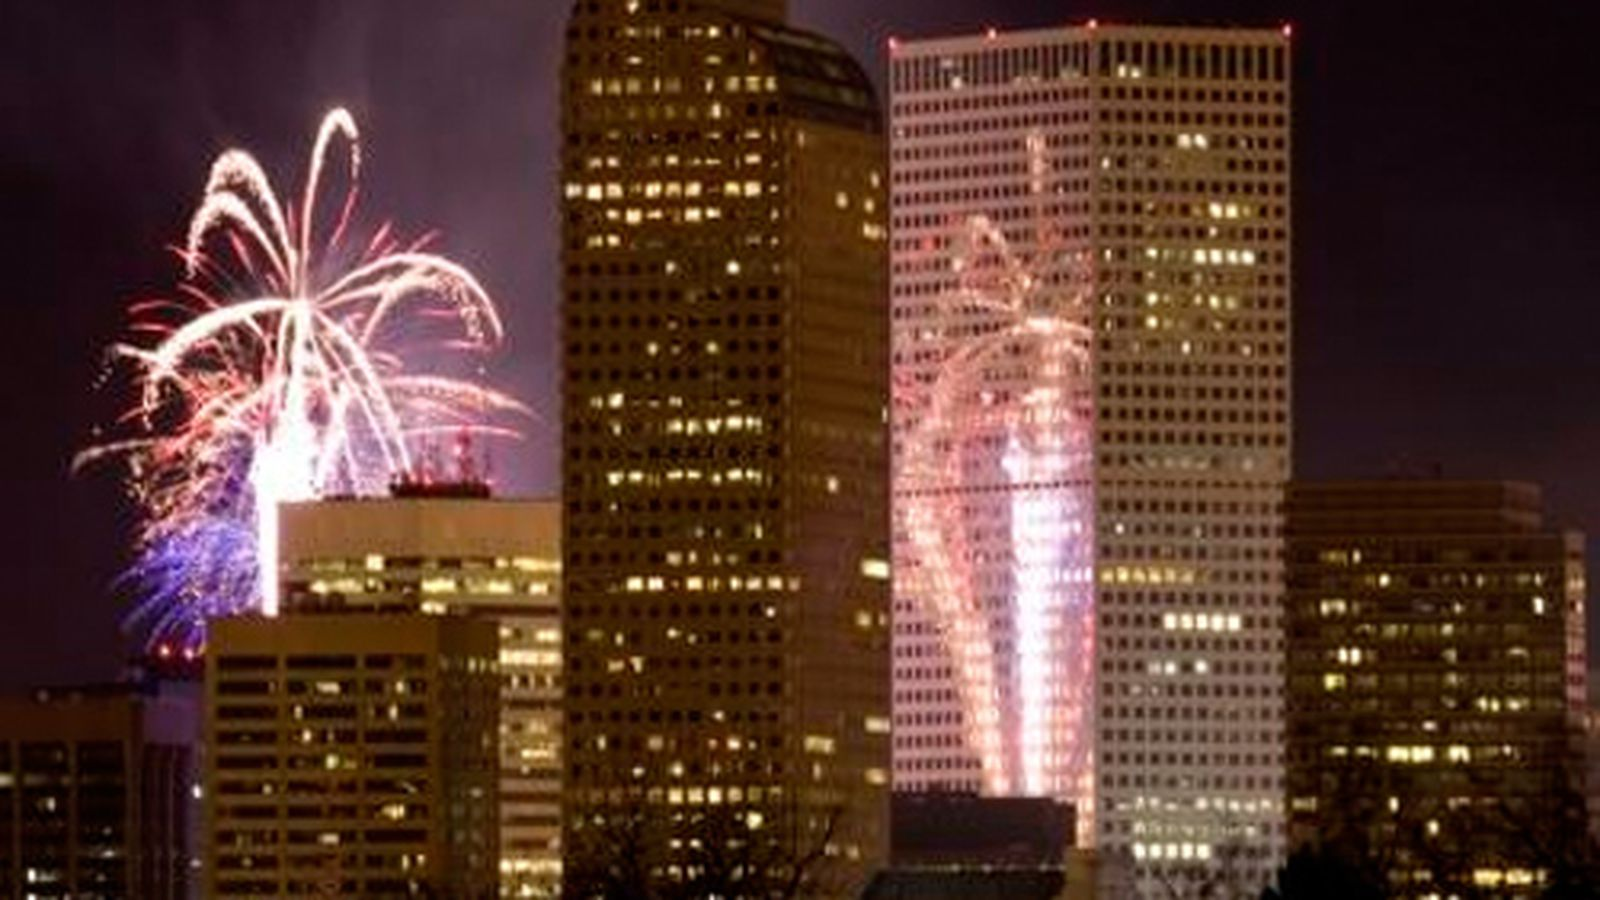 Where to eat dinner on new year 39 s eve in denver eater denver for What to make for new years eve dinner